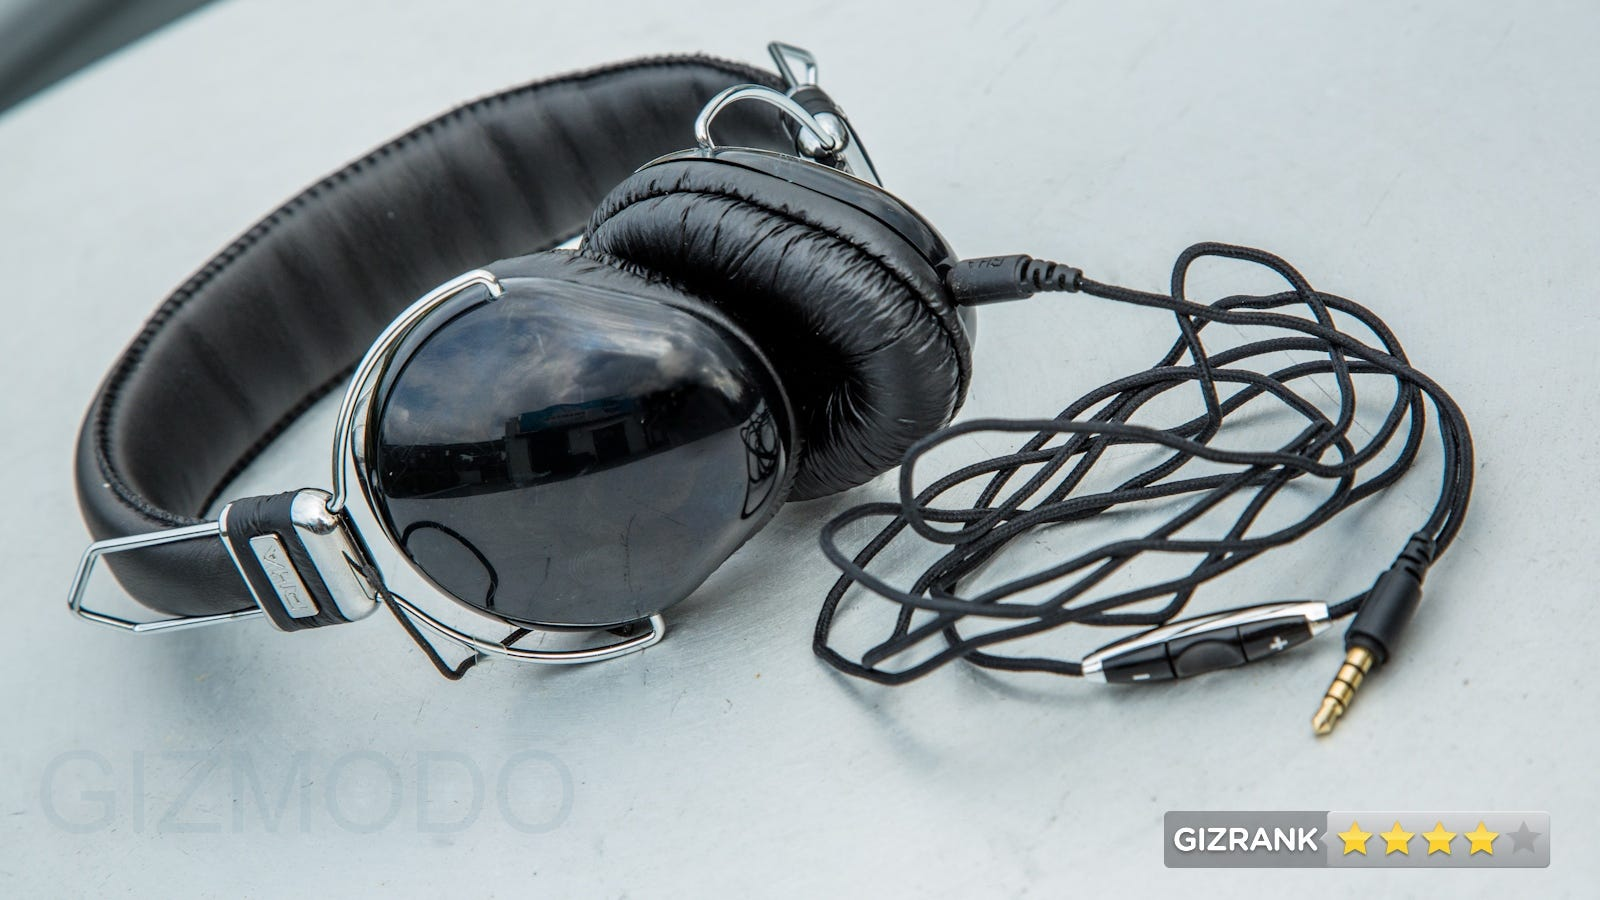 memory foam earbuds tips jaybird - RHA SA950i Review: The Perfect Pair of Cheap Headphones